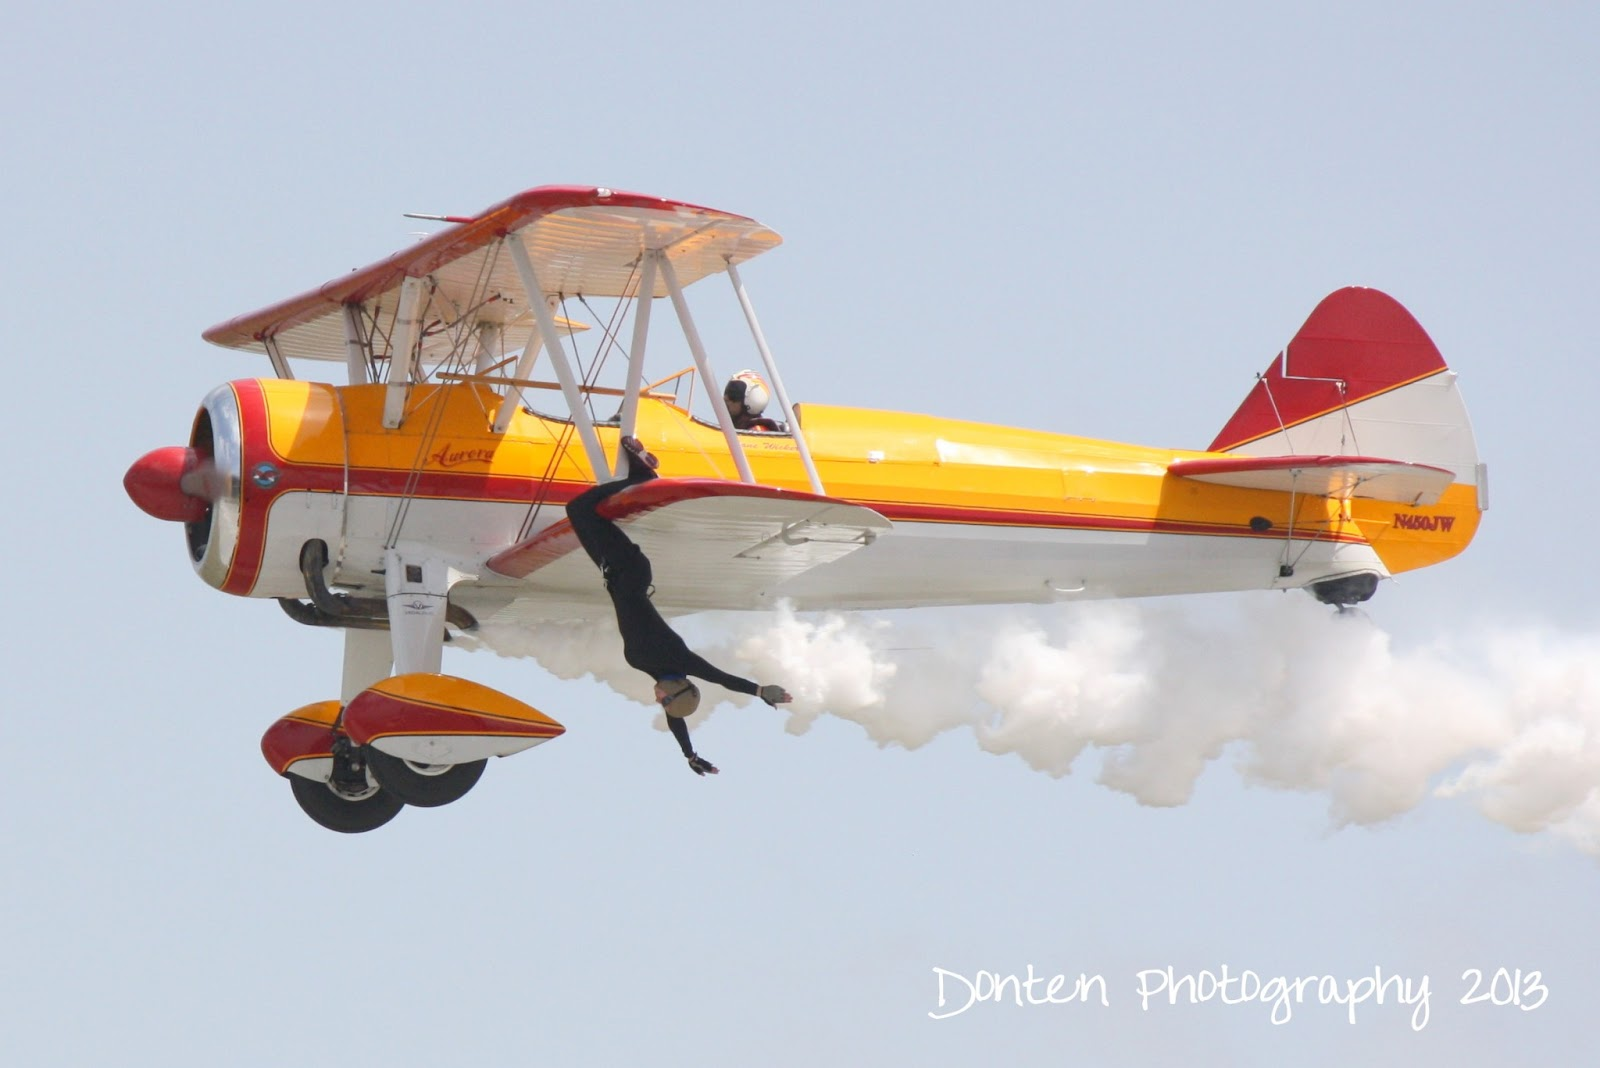 Photo of the Day: Jane Wicker - Wing Walker | Donten Photography